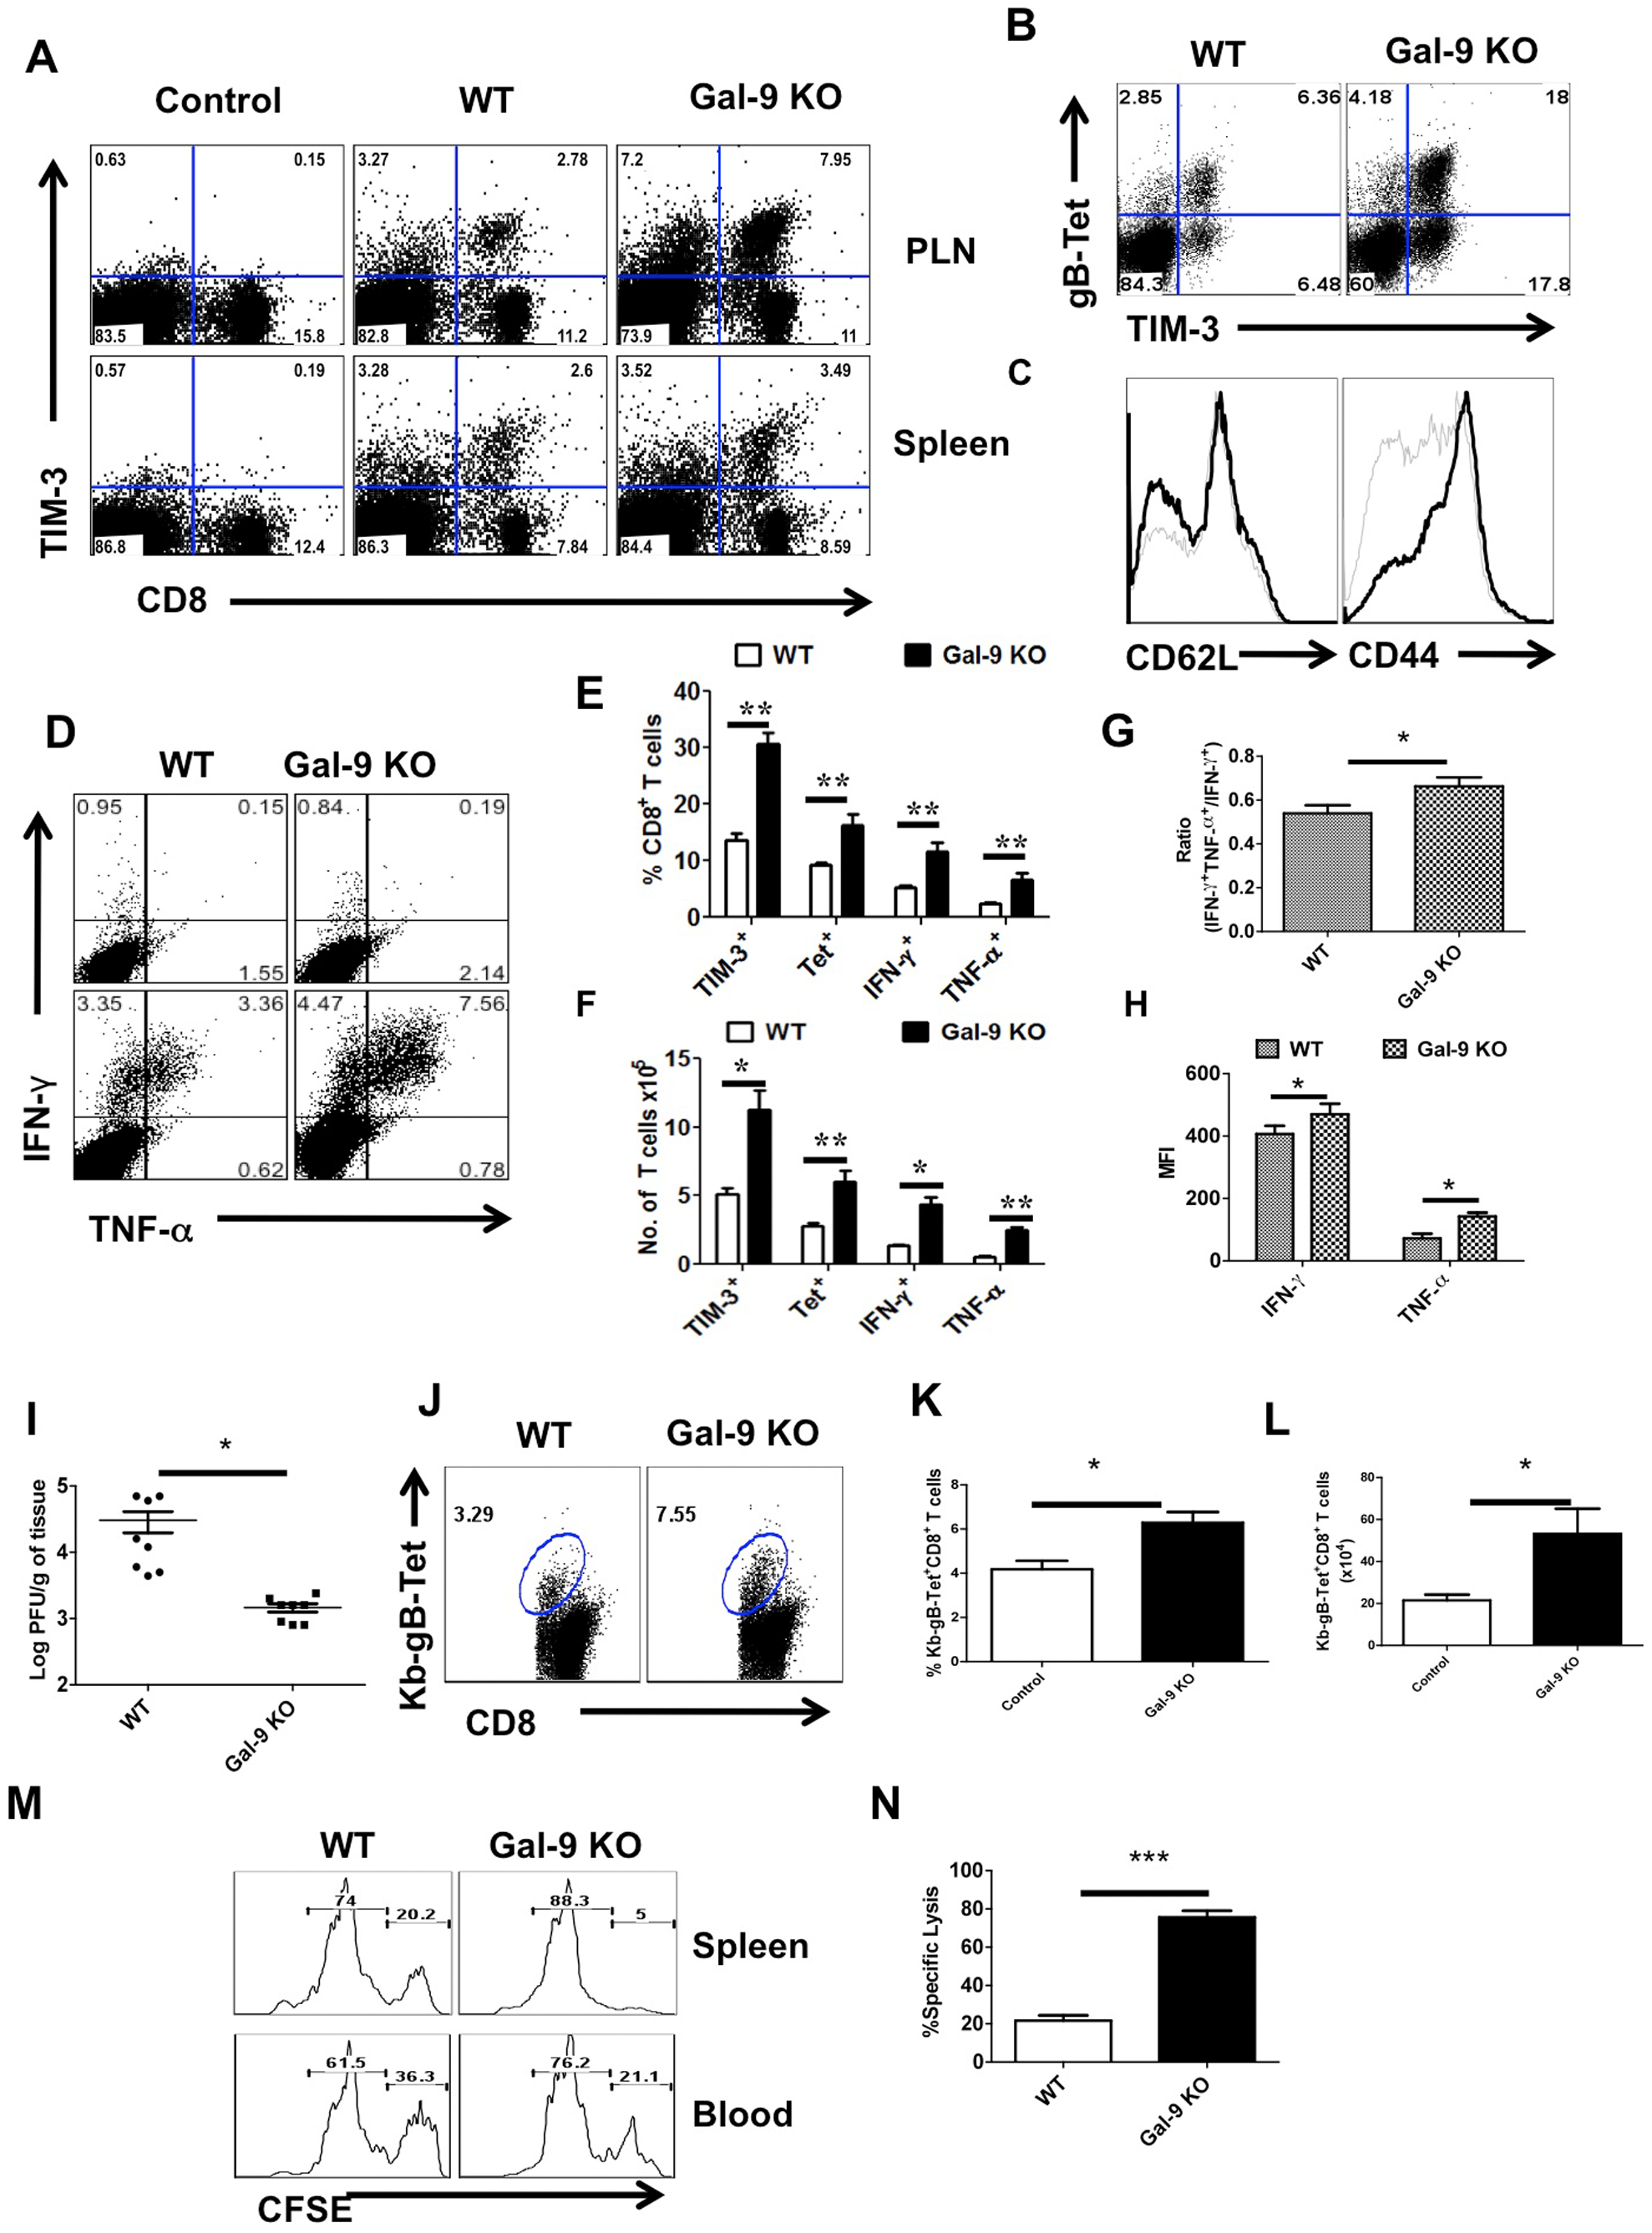 Galectin-9 knockout animals mount stronger virus-specific CD8<sup>+</sup> T cell responses in the acute phase.